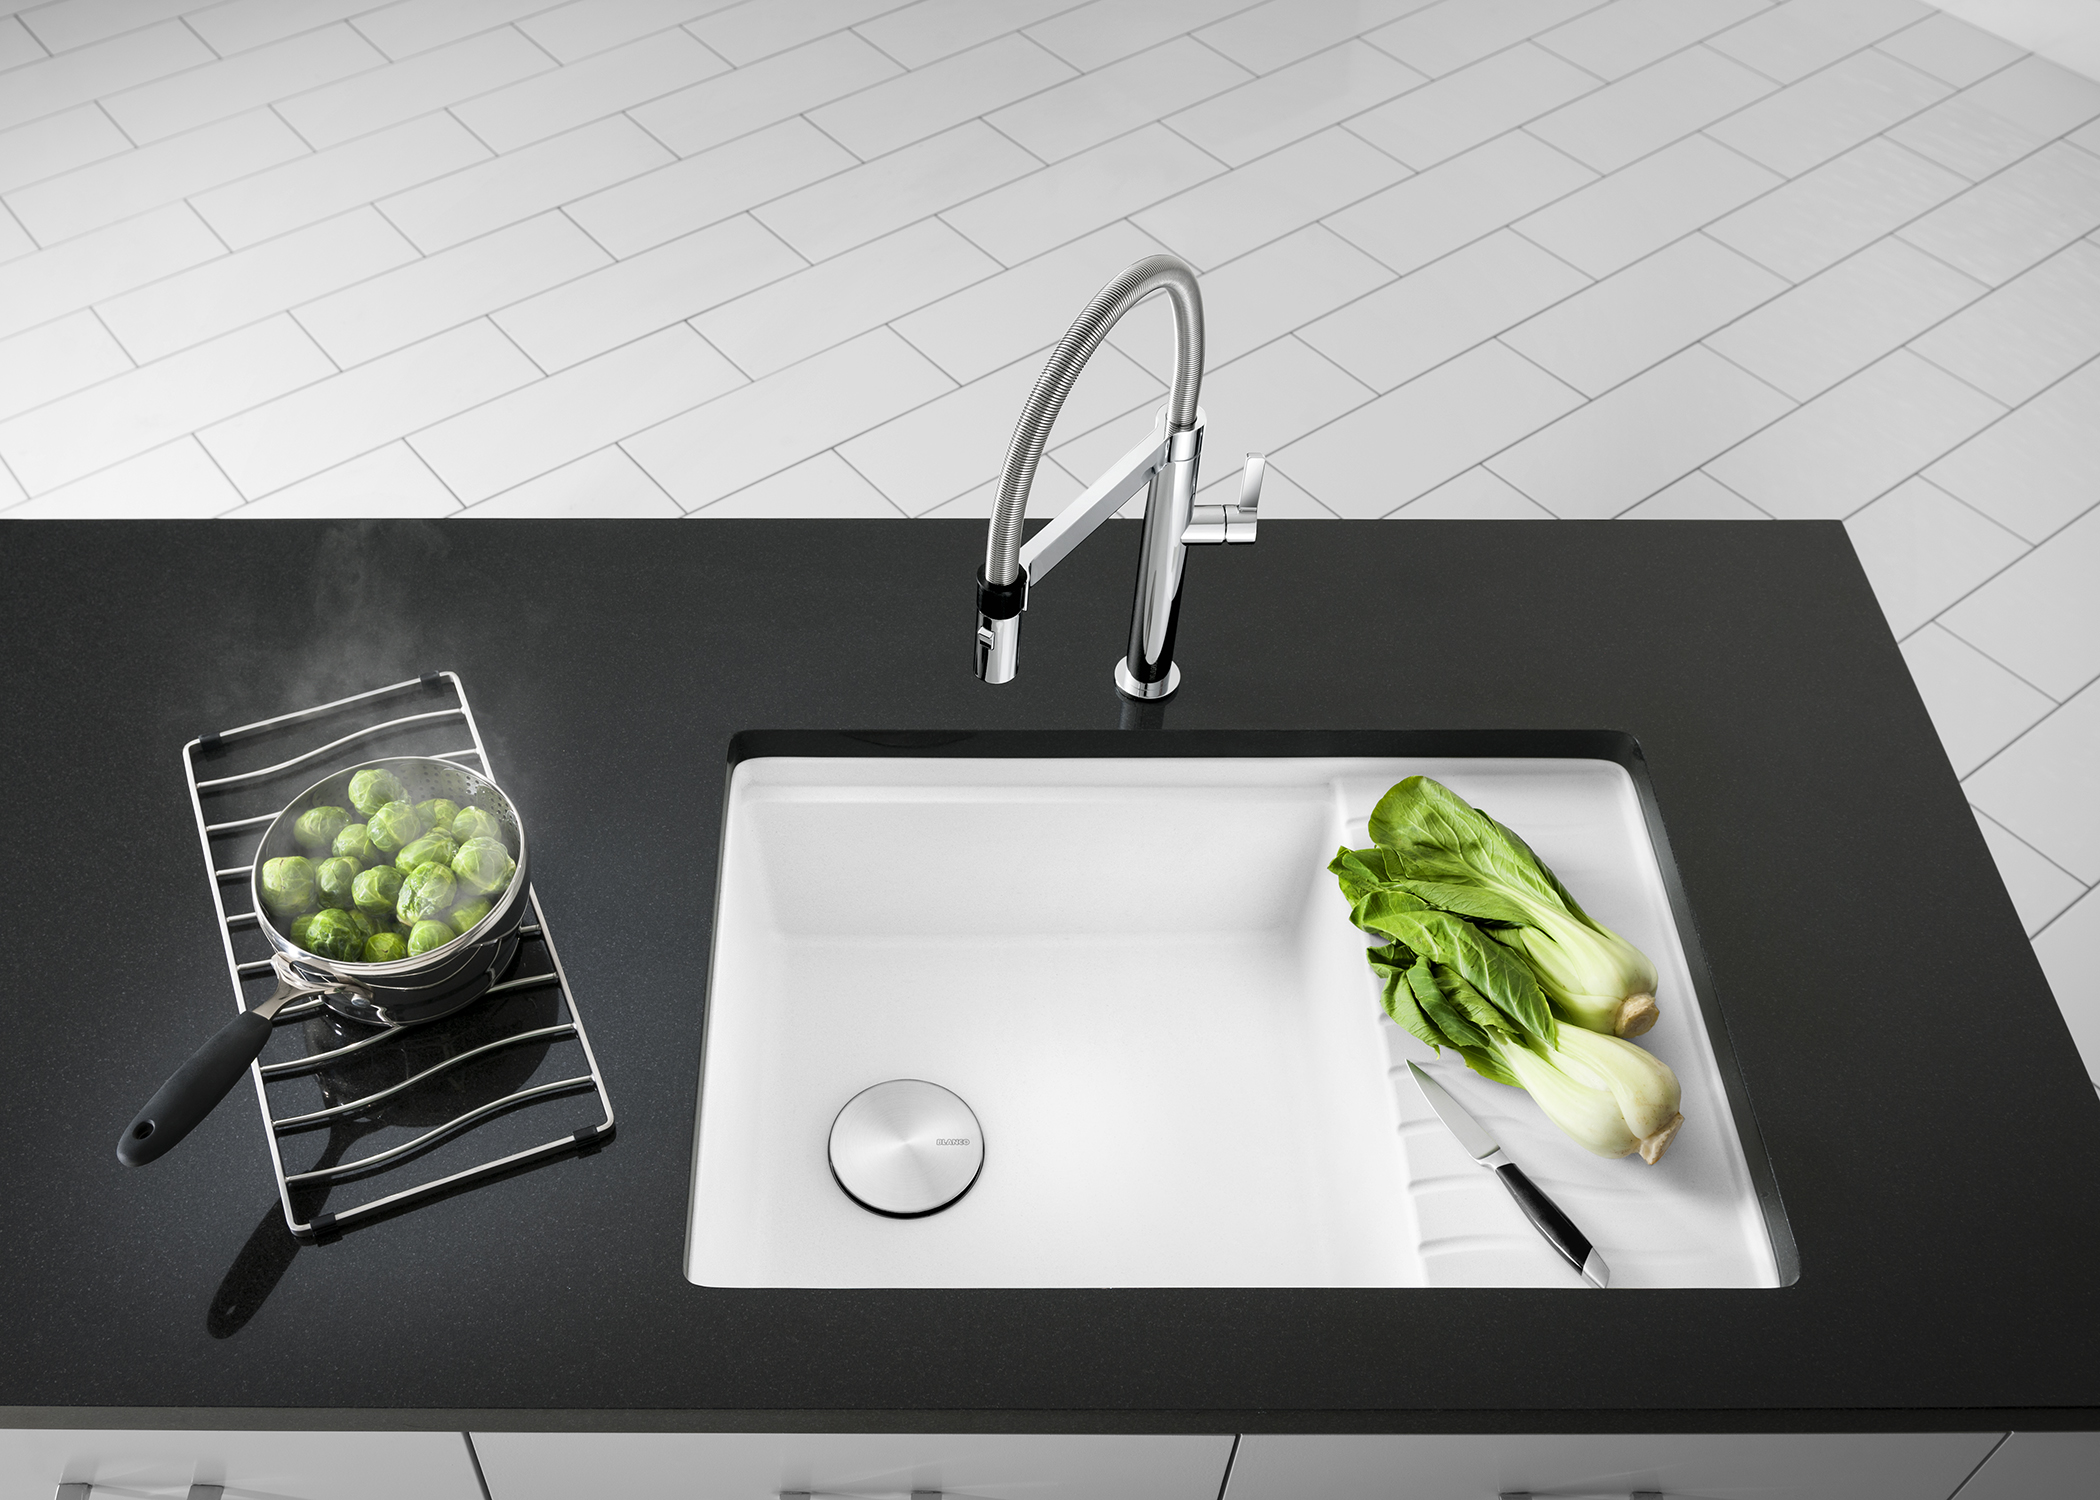 Best of #KBIS2015: MUST-HAVE: BLANCO's Luxury Sinks, Faucets, and Accessories / kitchen| Carla Aston reporting from Modenus' #BlogTourVegas | Image via: BLANCO.com